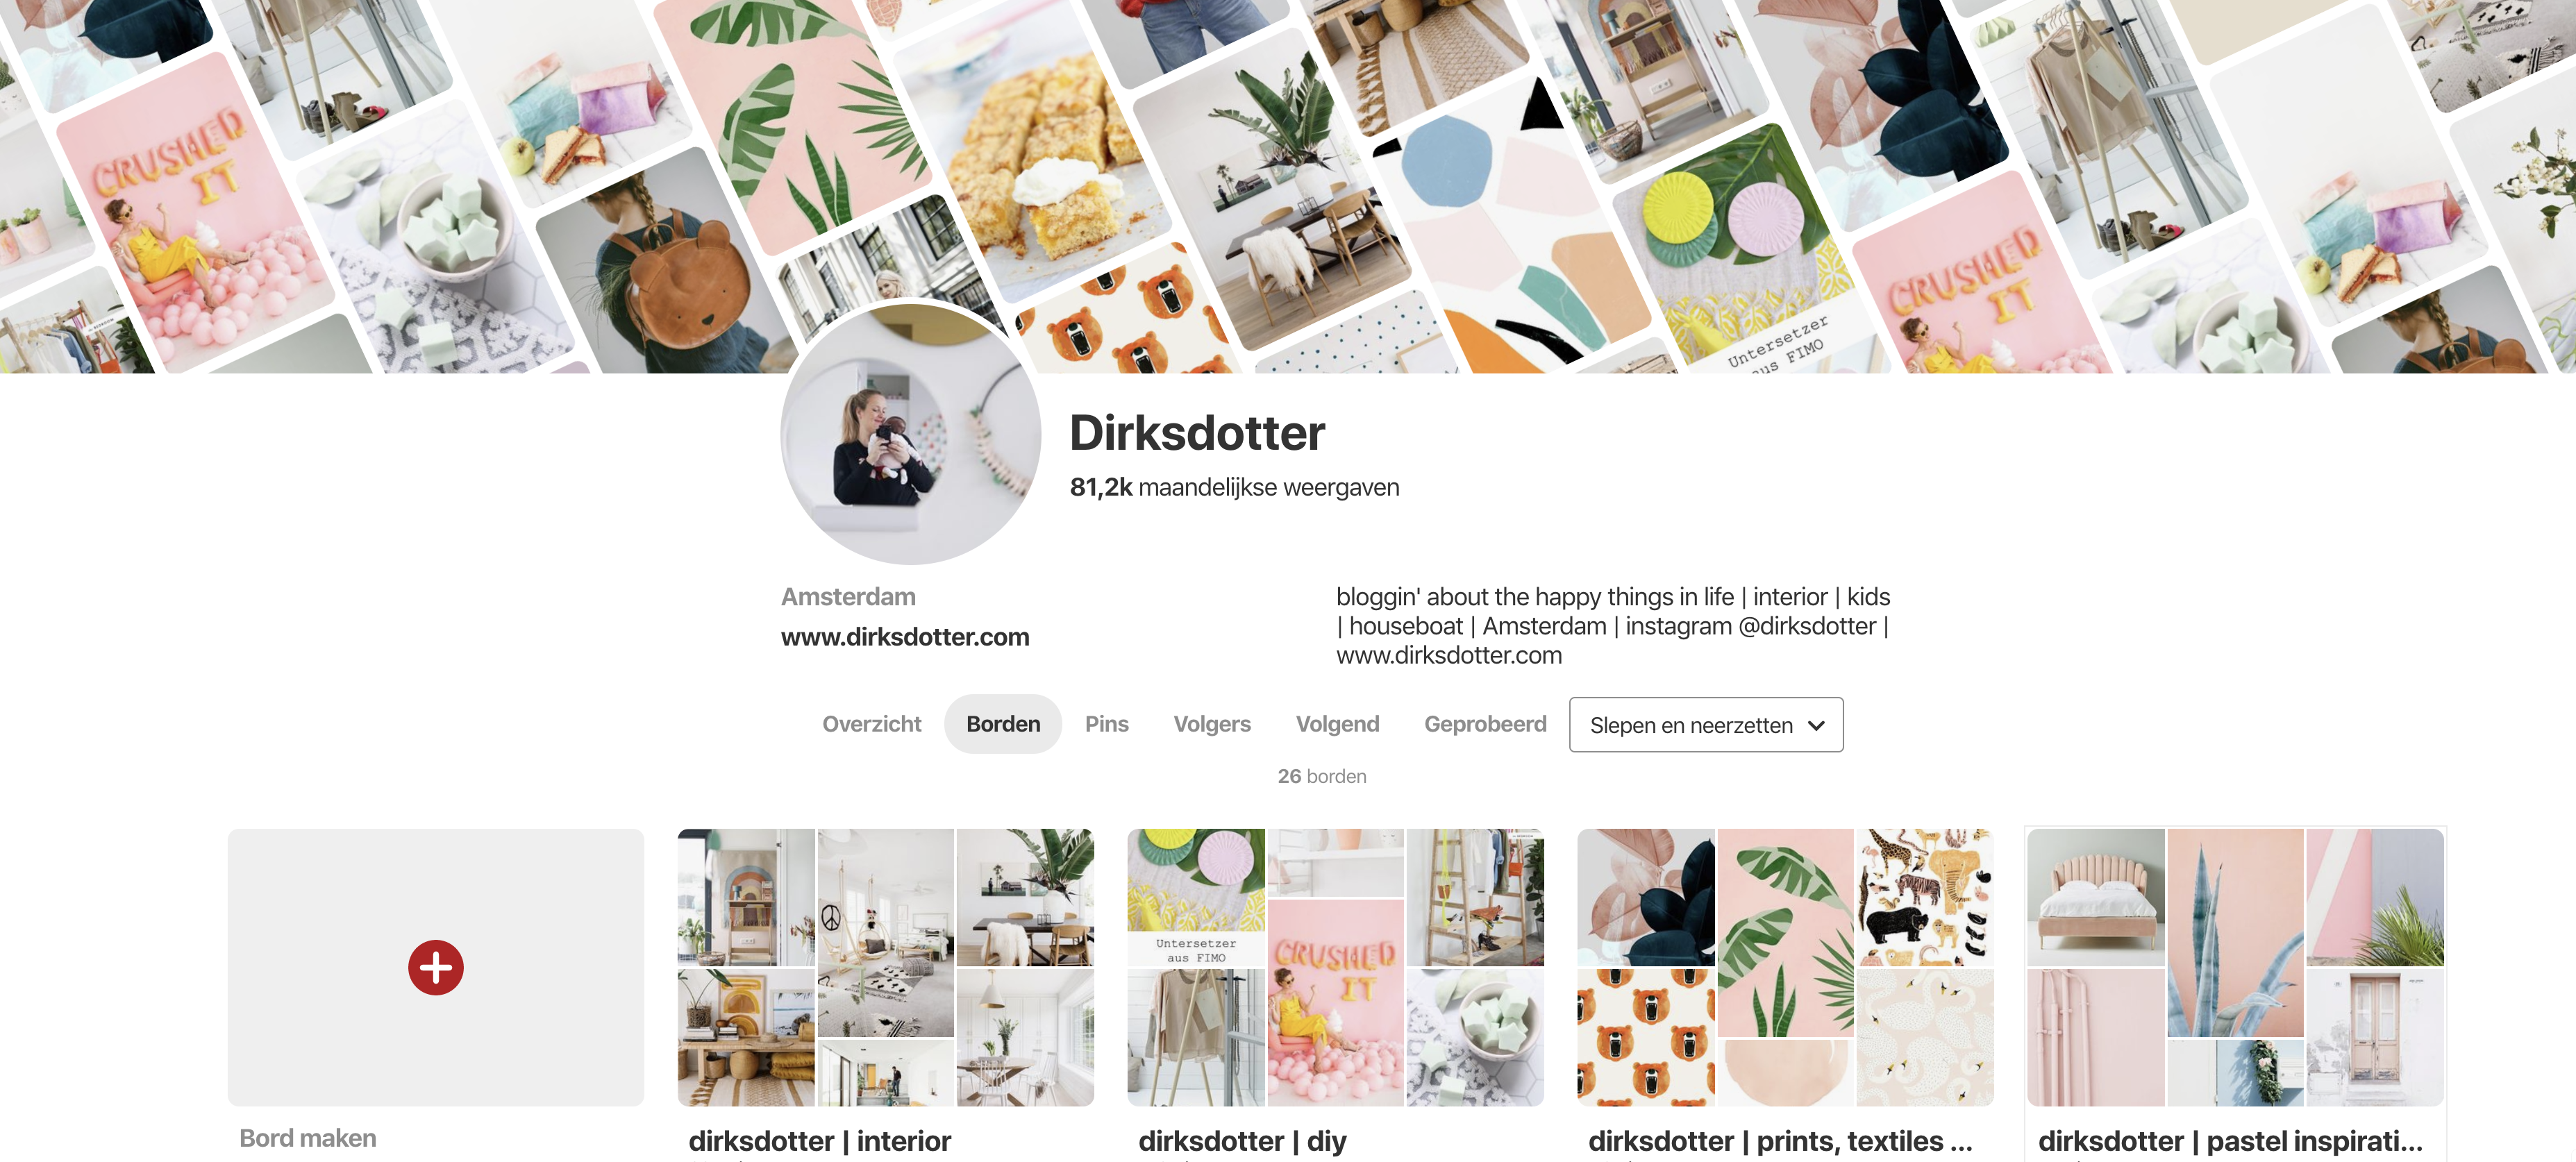 Pinterest: de leukste interieur en DIY accounts